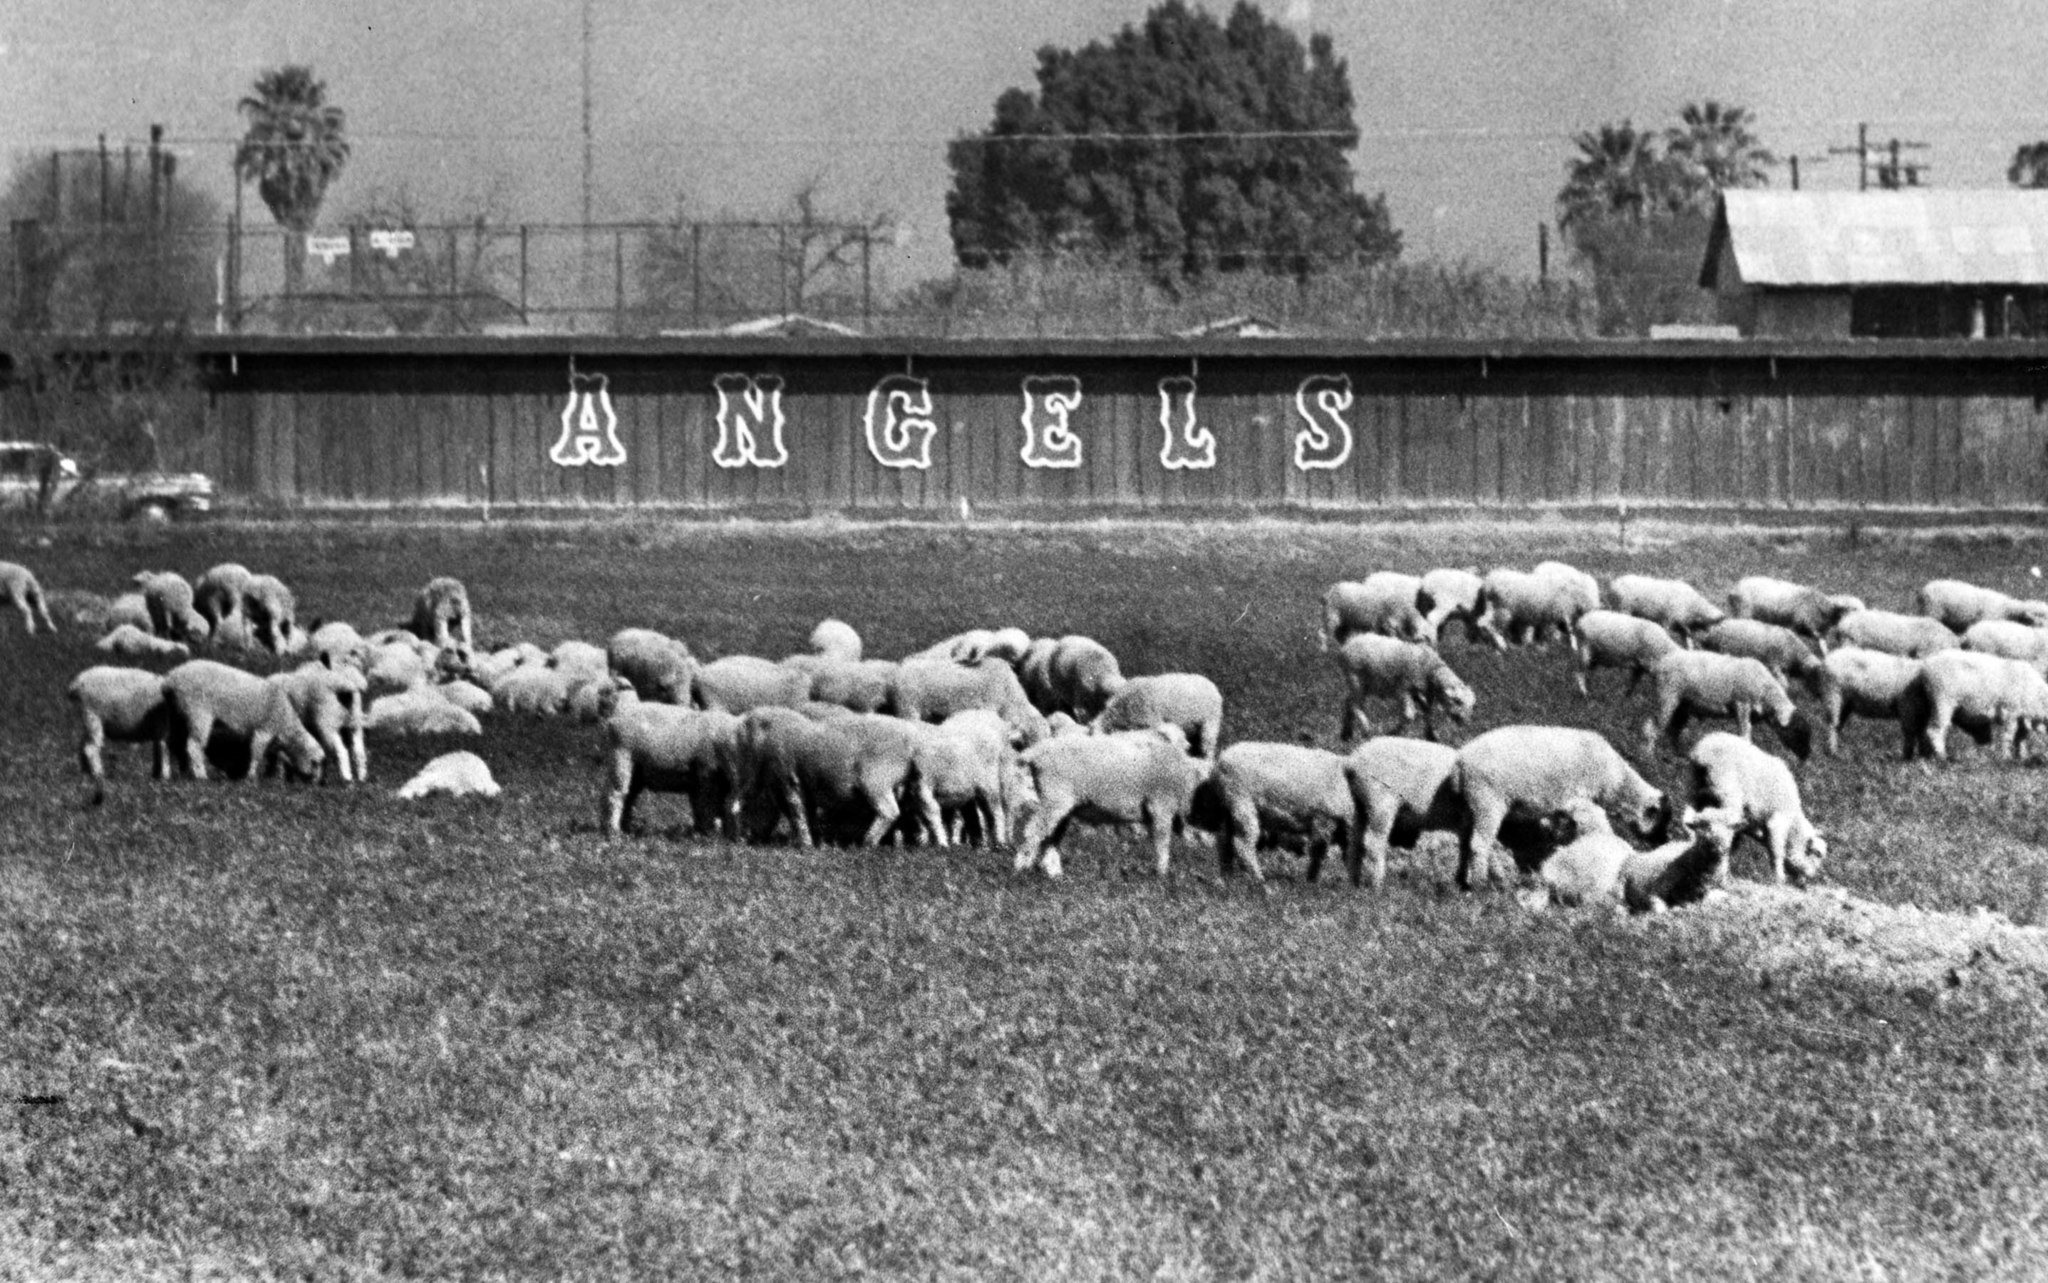 March 1972: Sheep graze in a field next to the Angels' spring training camp in Holtville, California